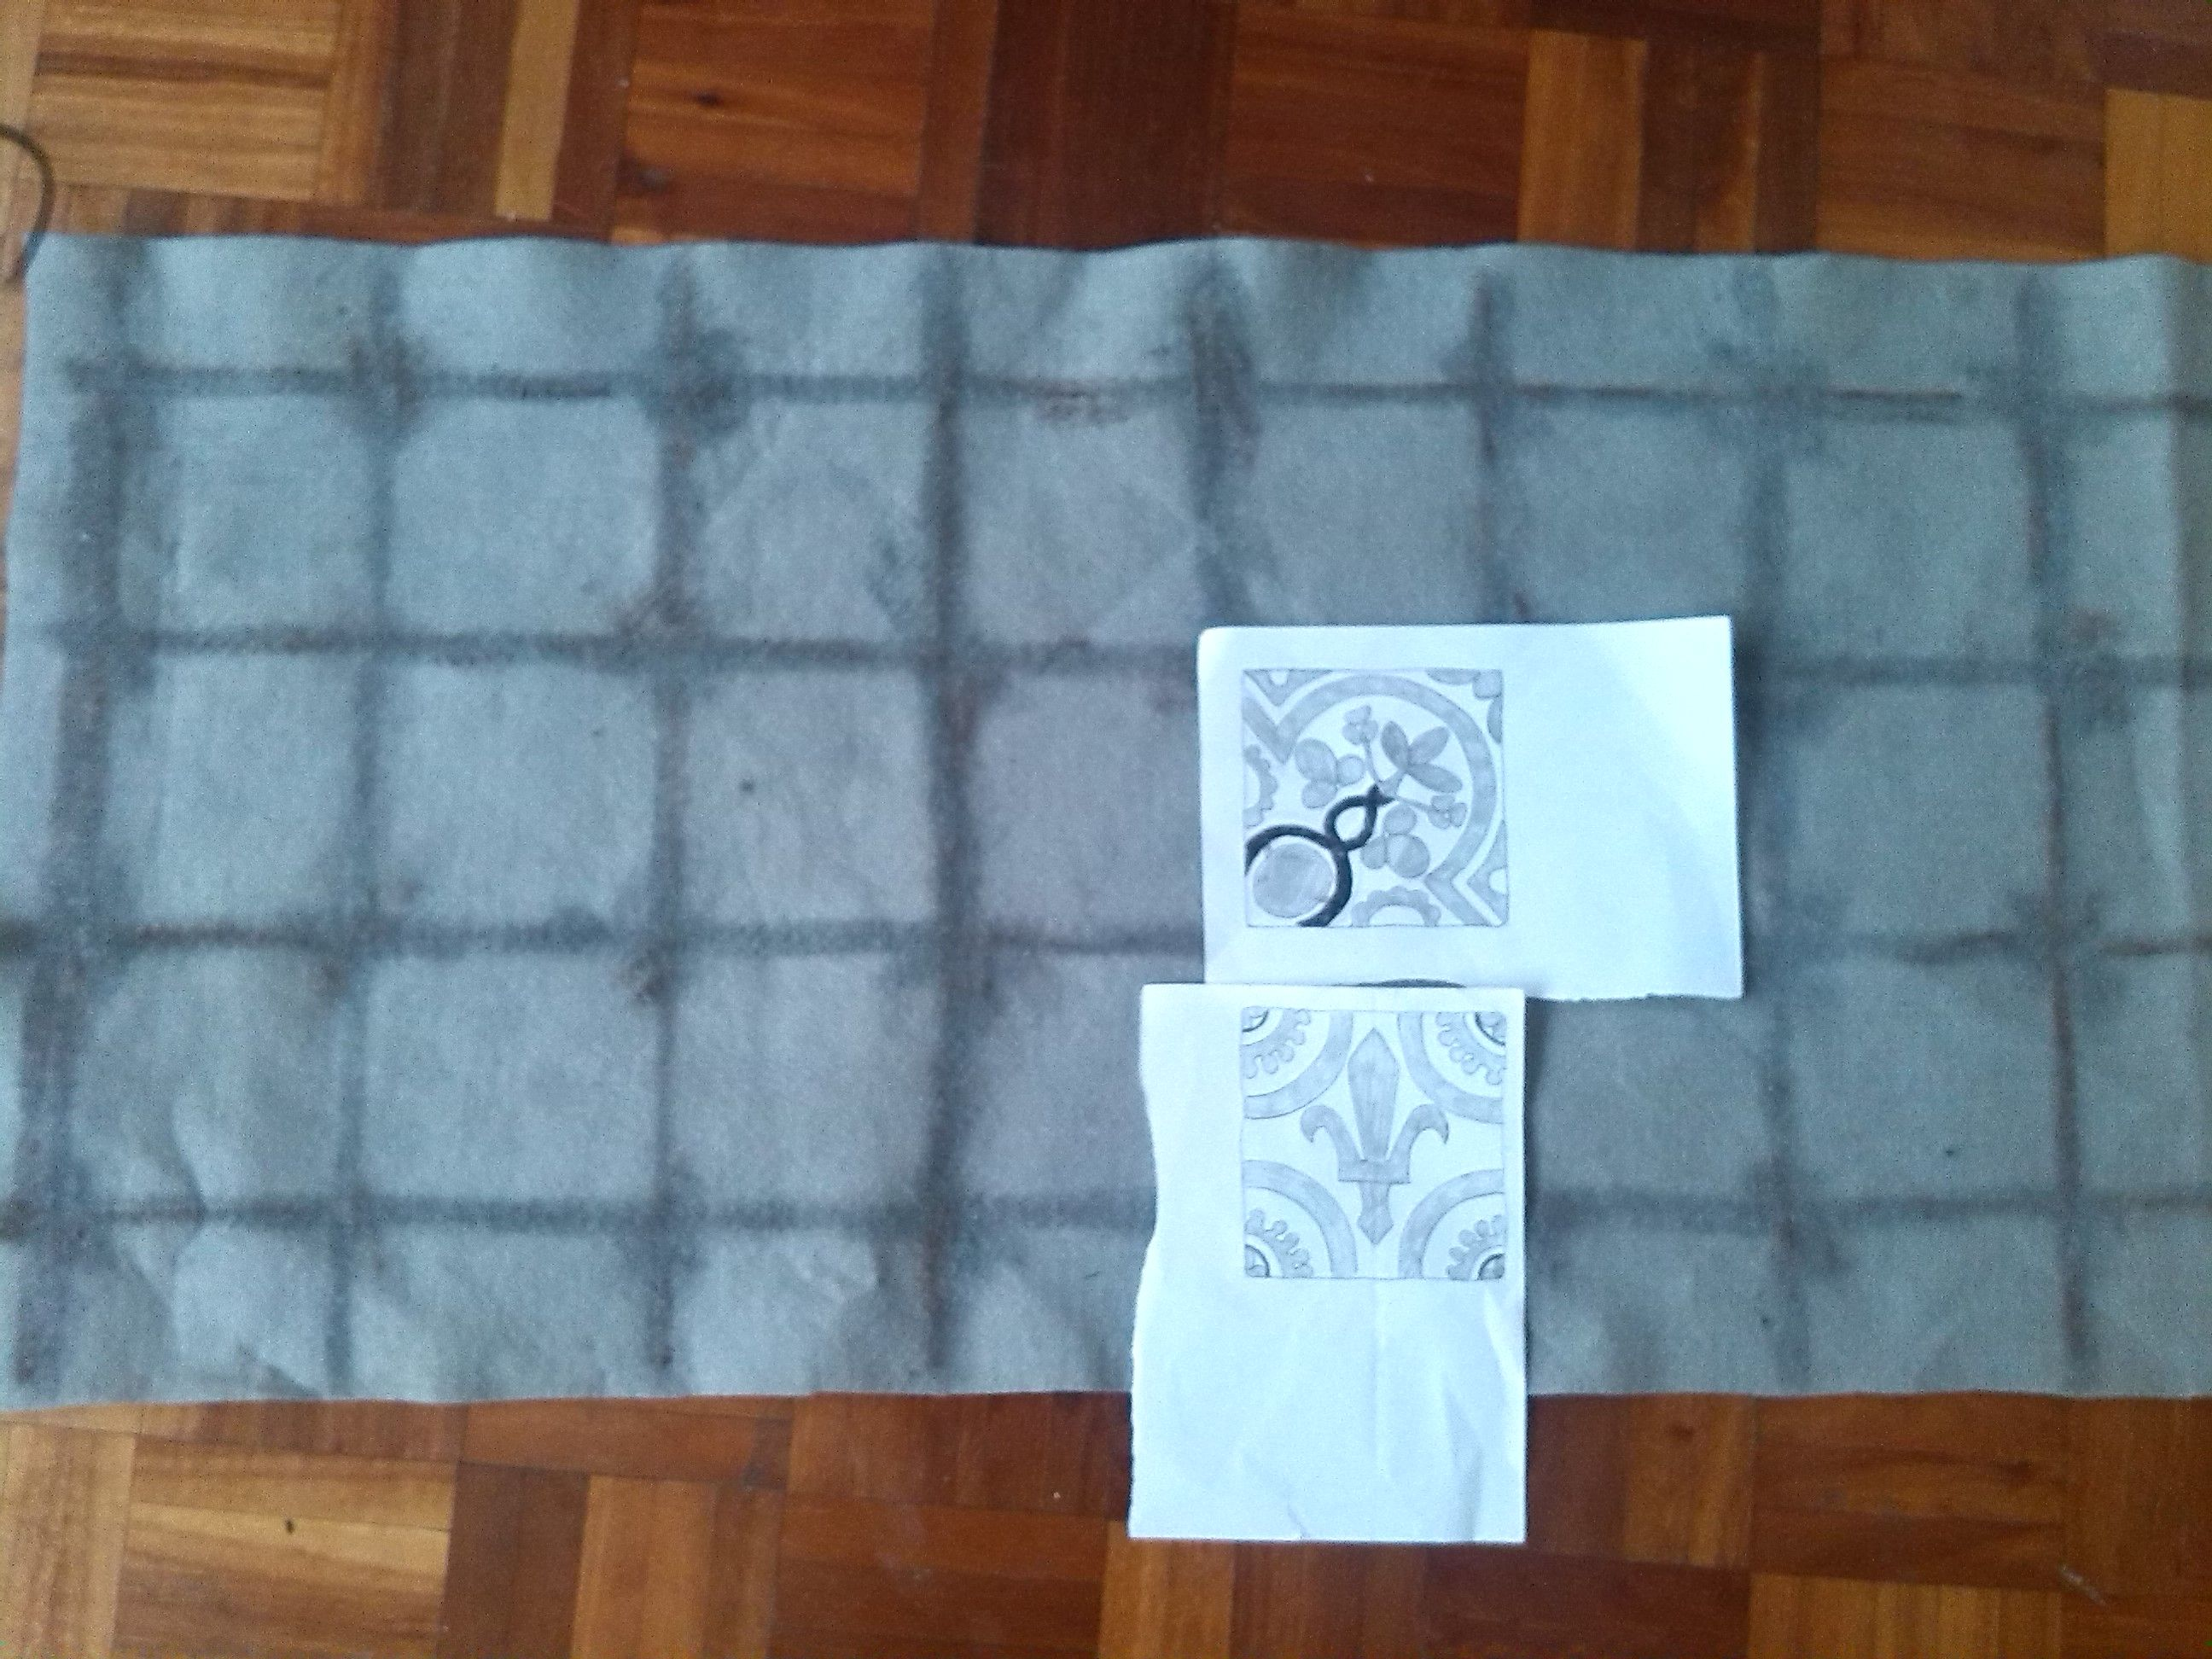 planning the layout of the floor tile panel of St. Cedds banner. LB ...